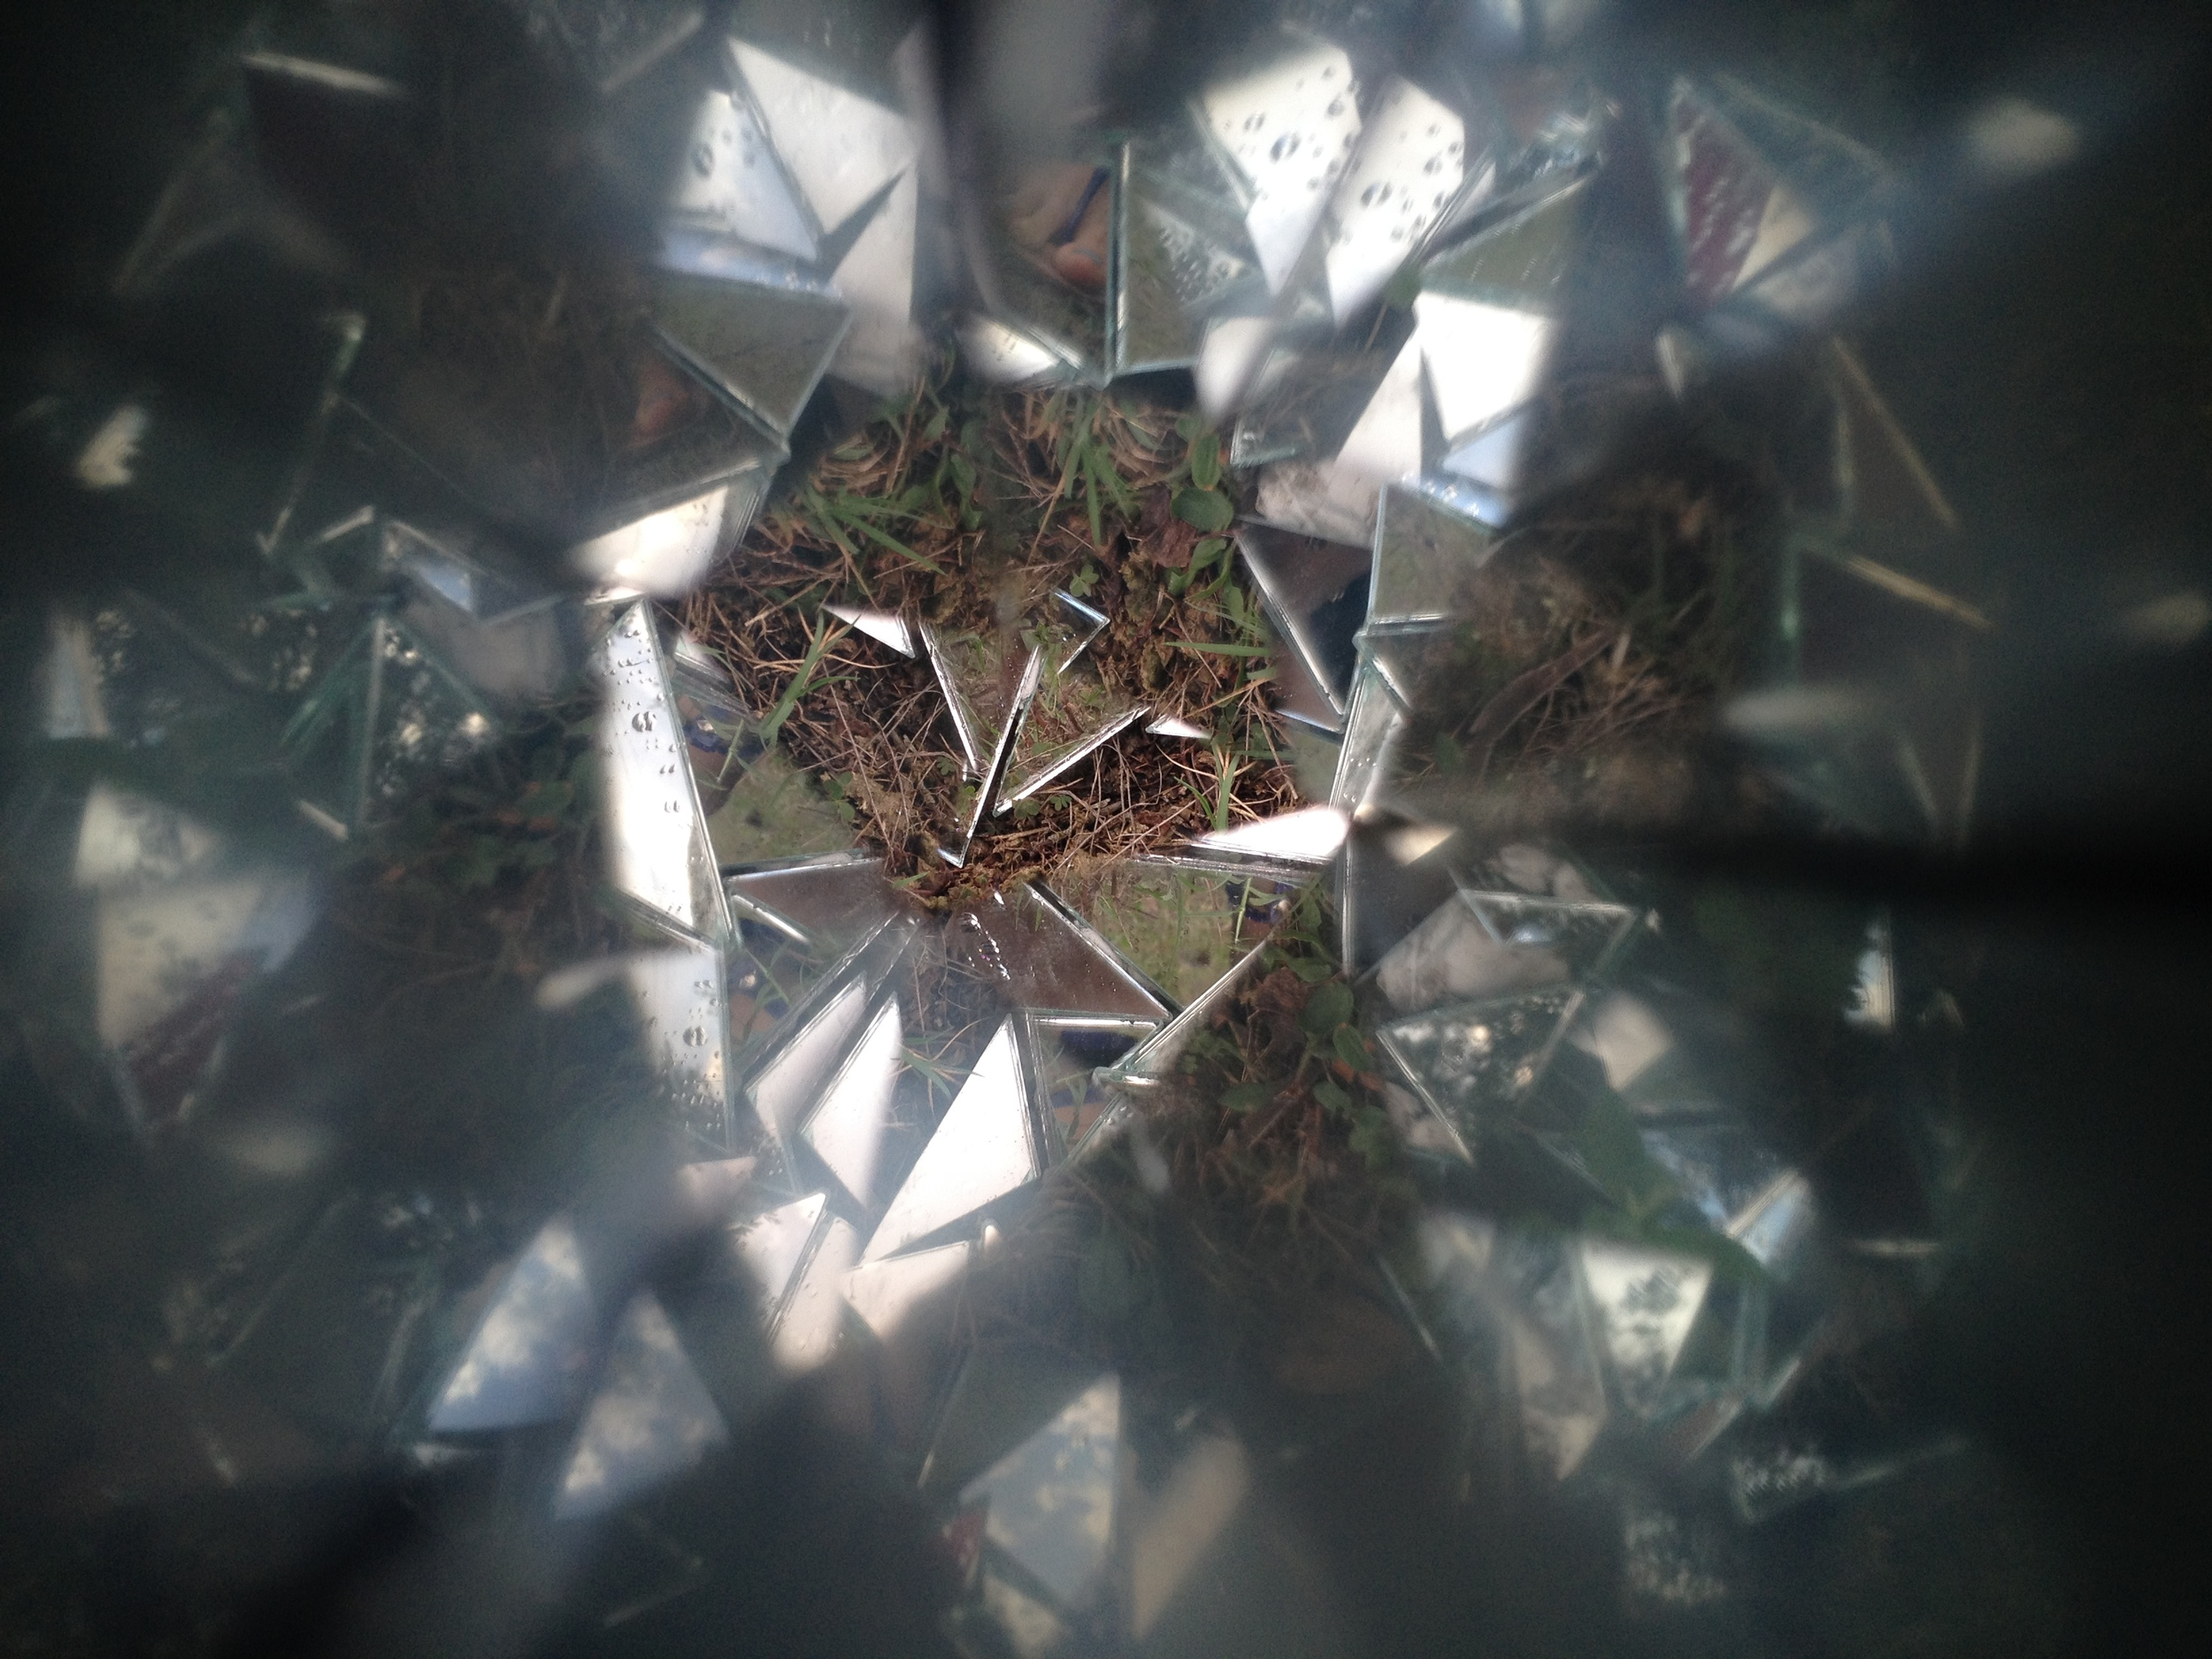 A view of my work through a kaleidoscope made by Heidi Kenyon